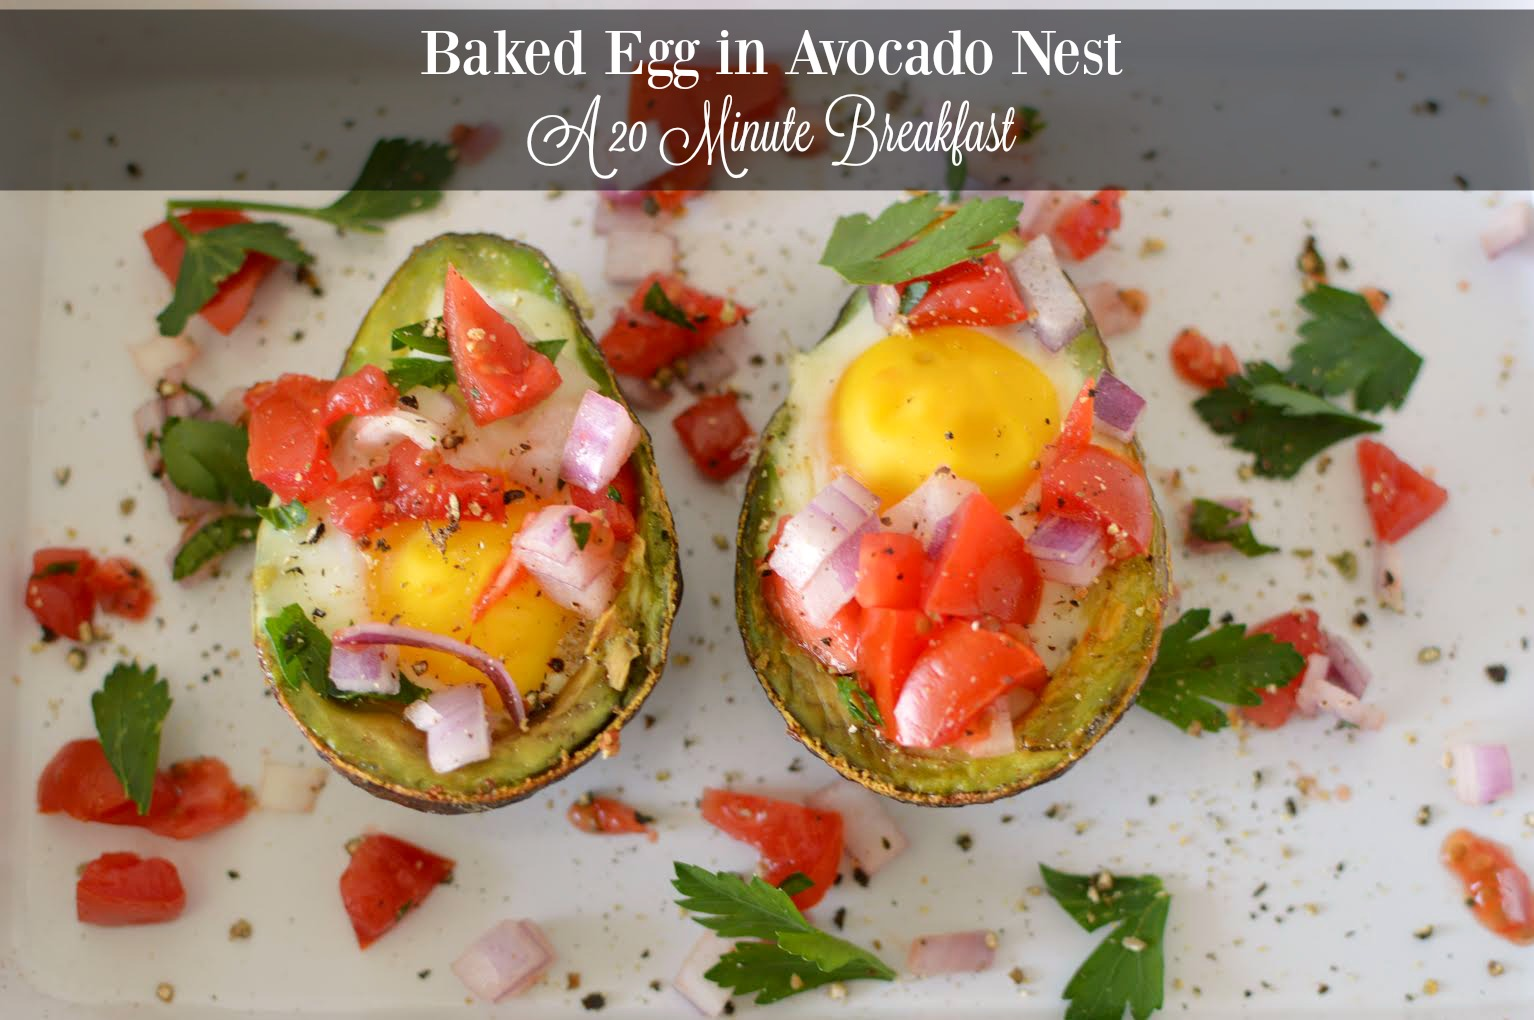 Baked Egg in Avocado Nest